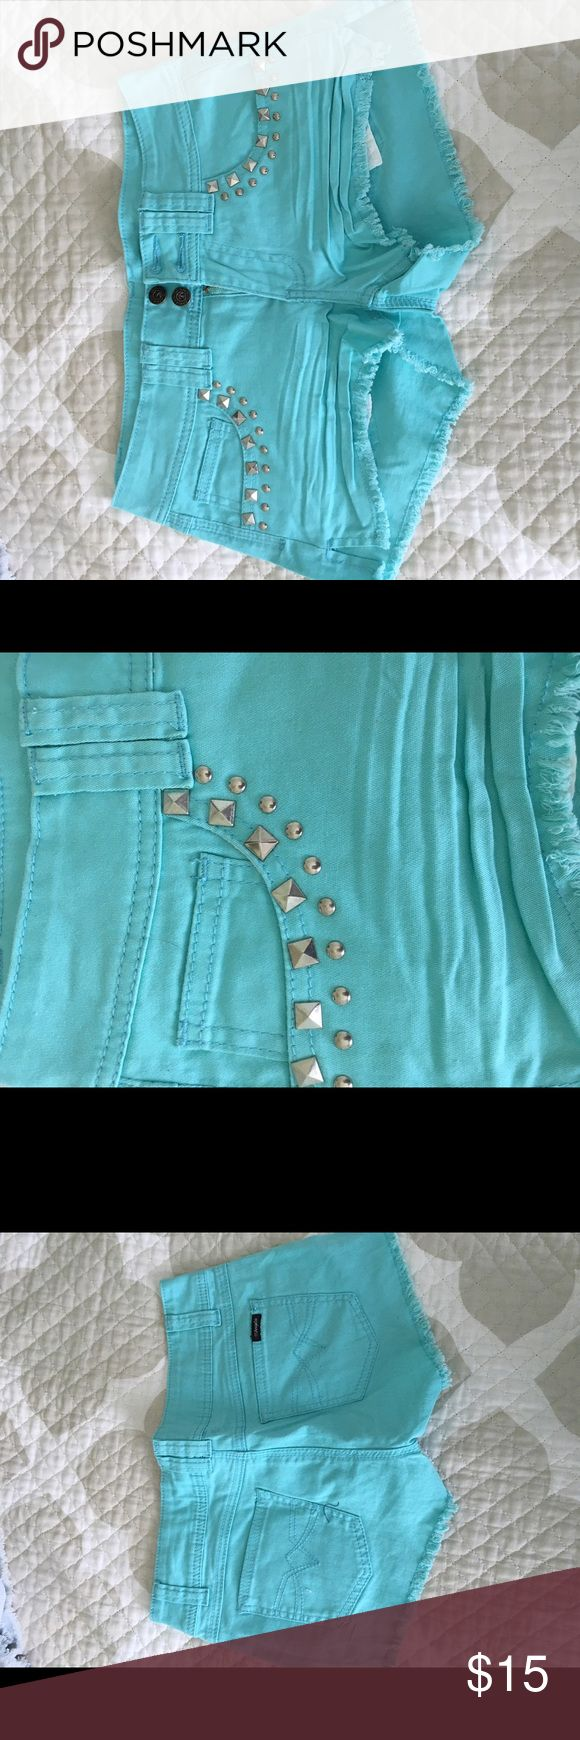 Angel teal shorts Angel teal shorts with some pocket detailing Angels Shorts